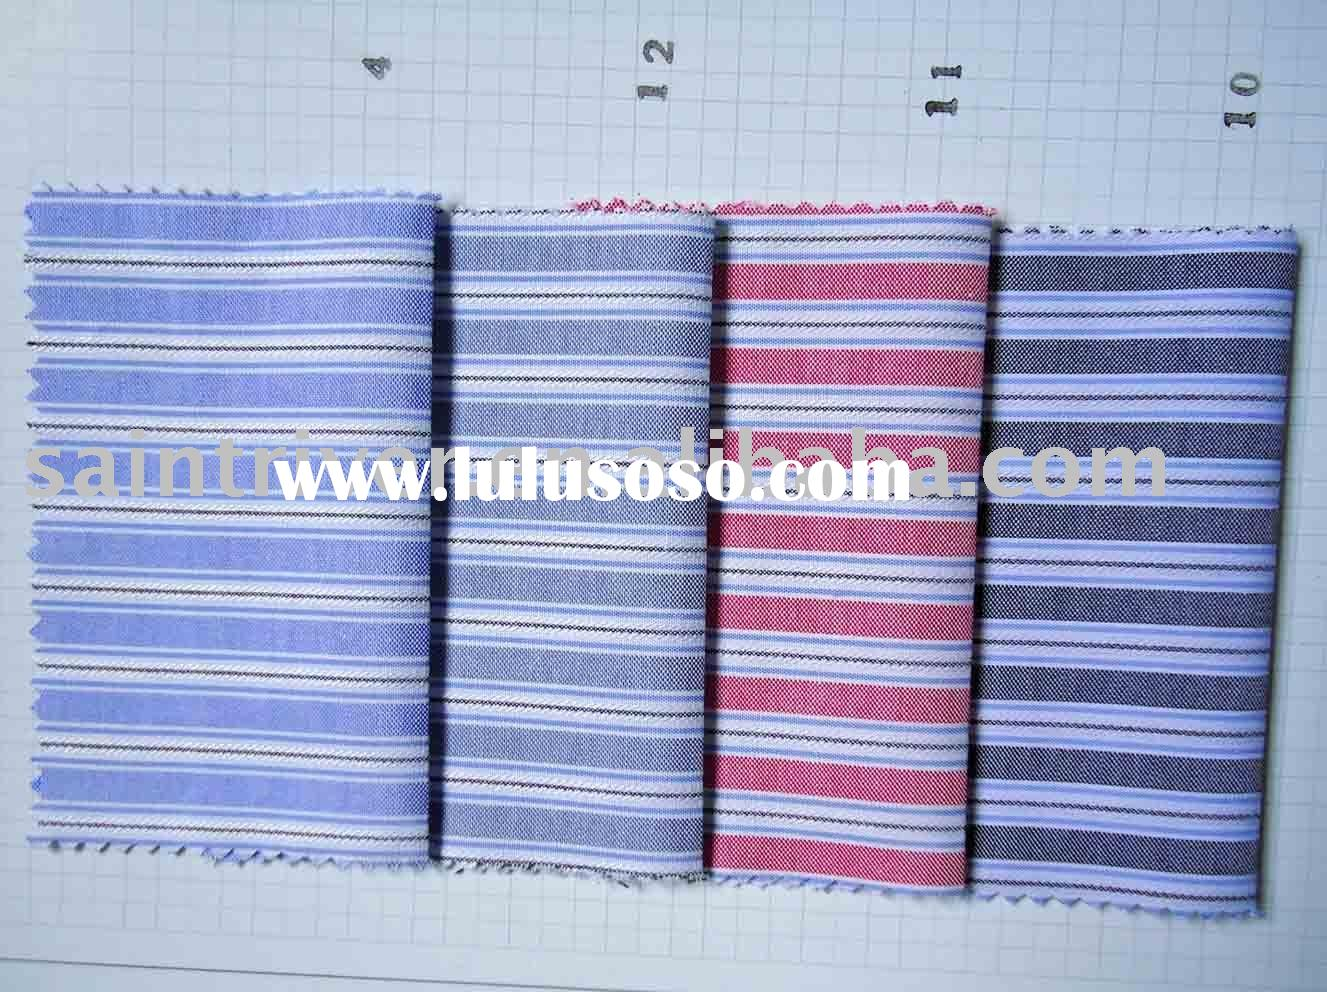 Polyester/ cotton wholesale fabric/yarn dyed fabric (8107#)